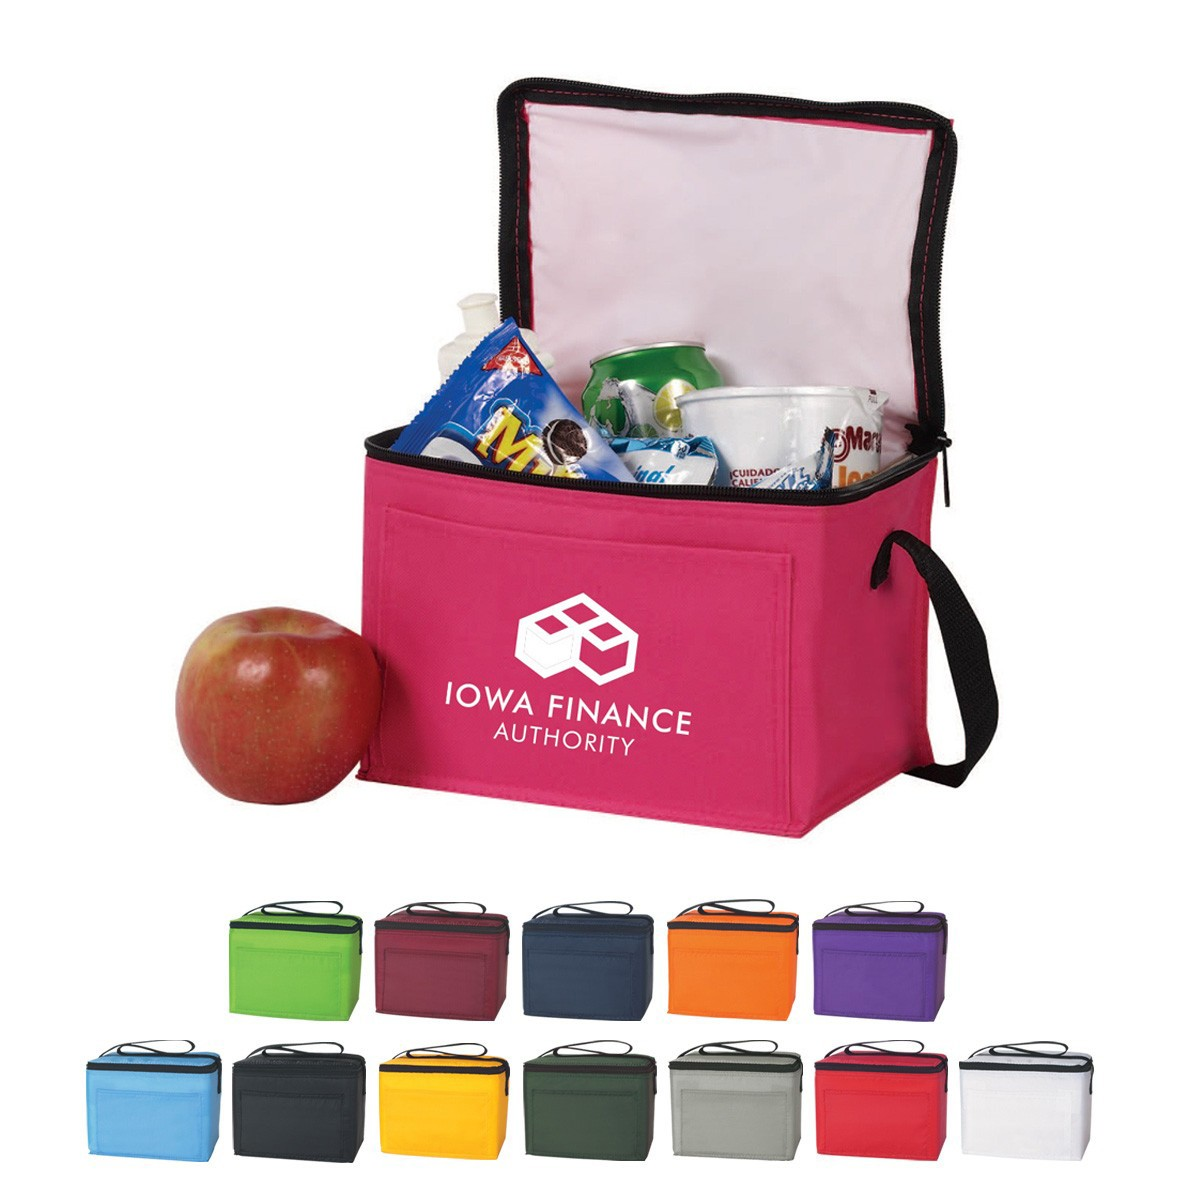 Promotional Non-Woven Cooler Bag,Promotional Non-Woven Cooler Bag Supplier And Wholesaler,Non-Woven